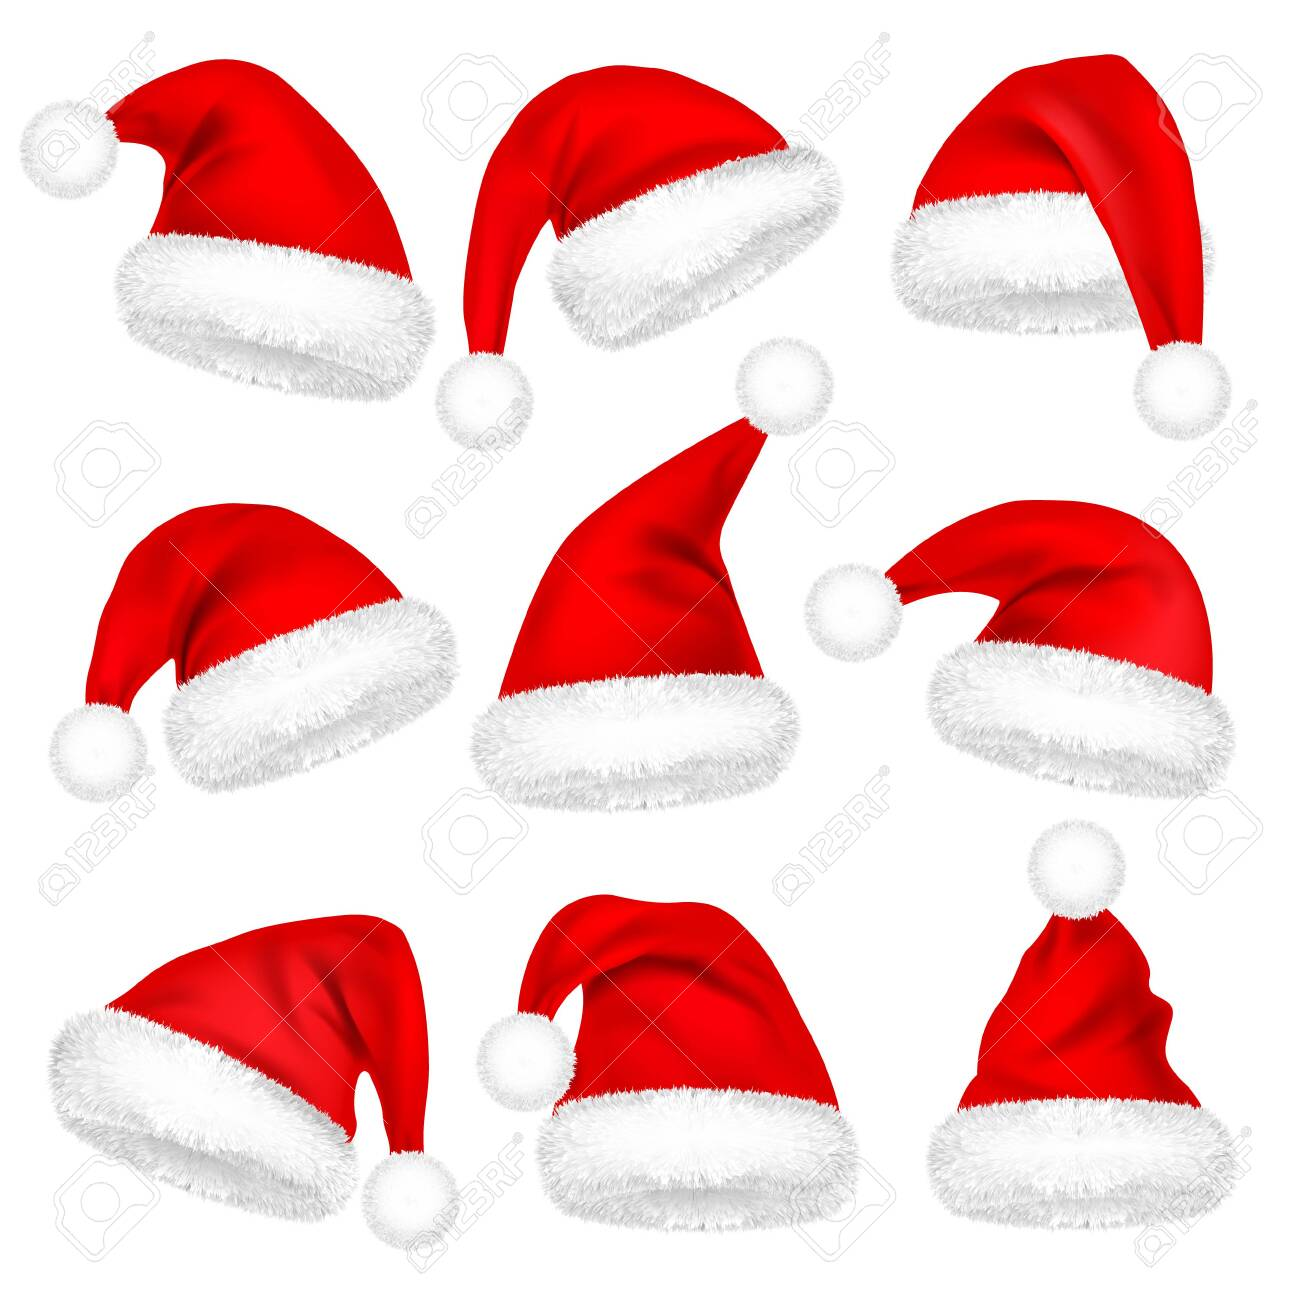 Christmas Santa Claus Hats With Fur Set. New Year Red Hat Isolated on White Background. Winter Cap. Vector illustration - 129395539